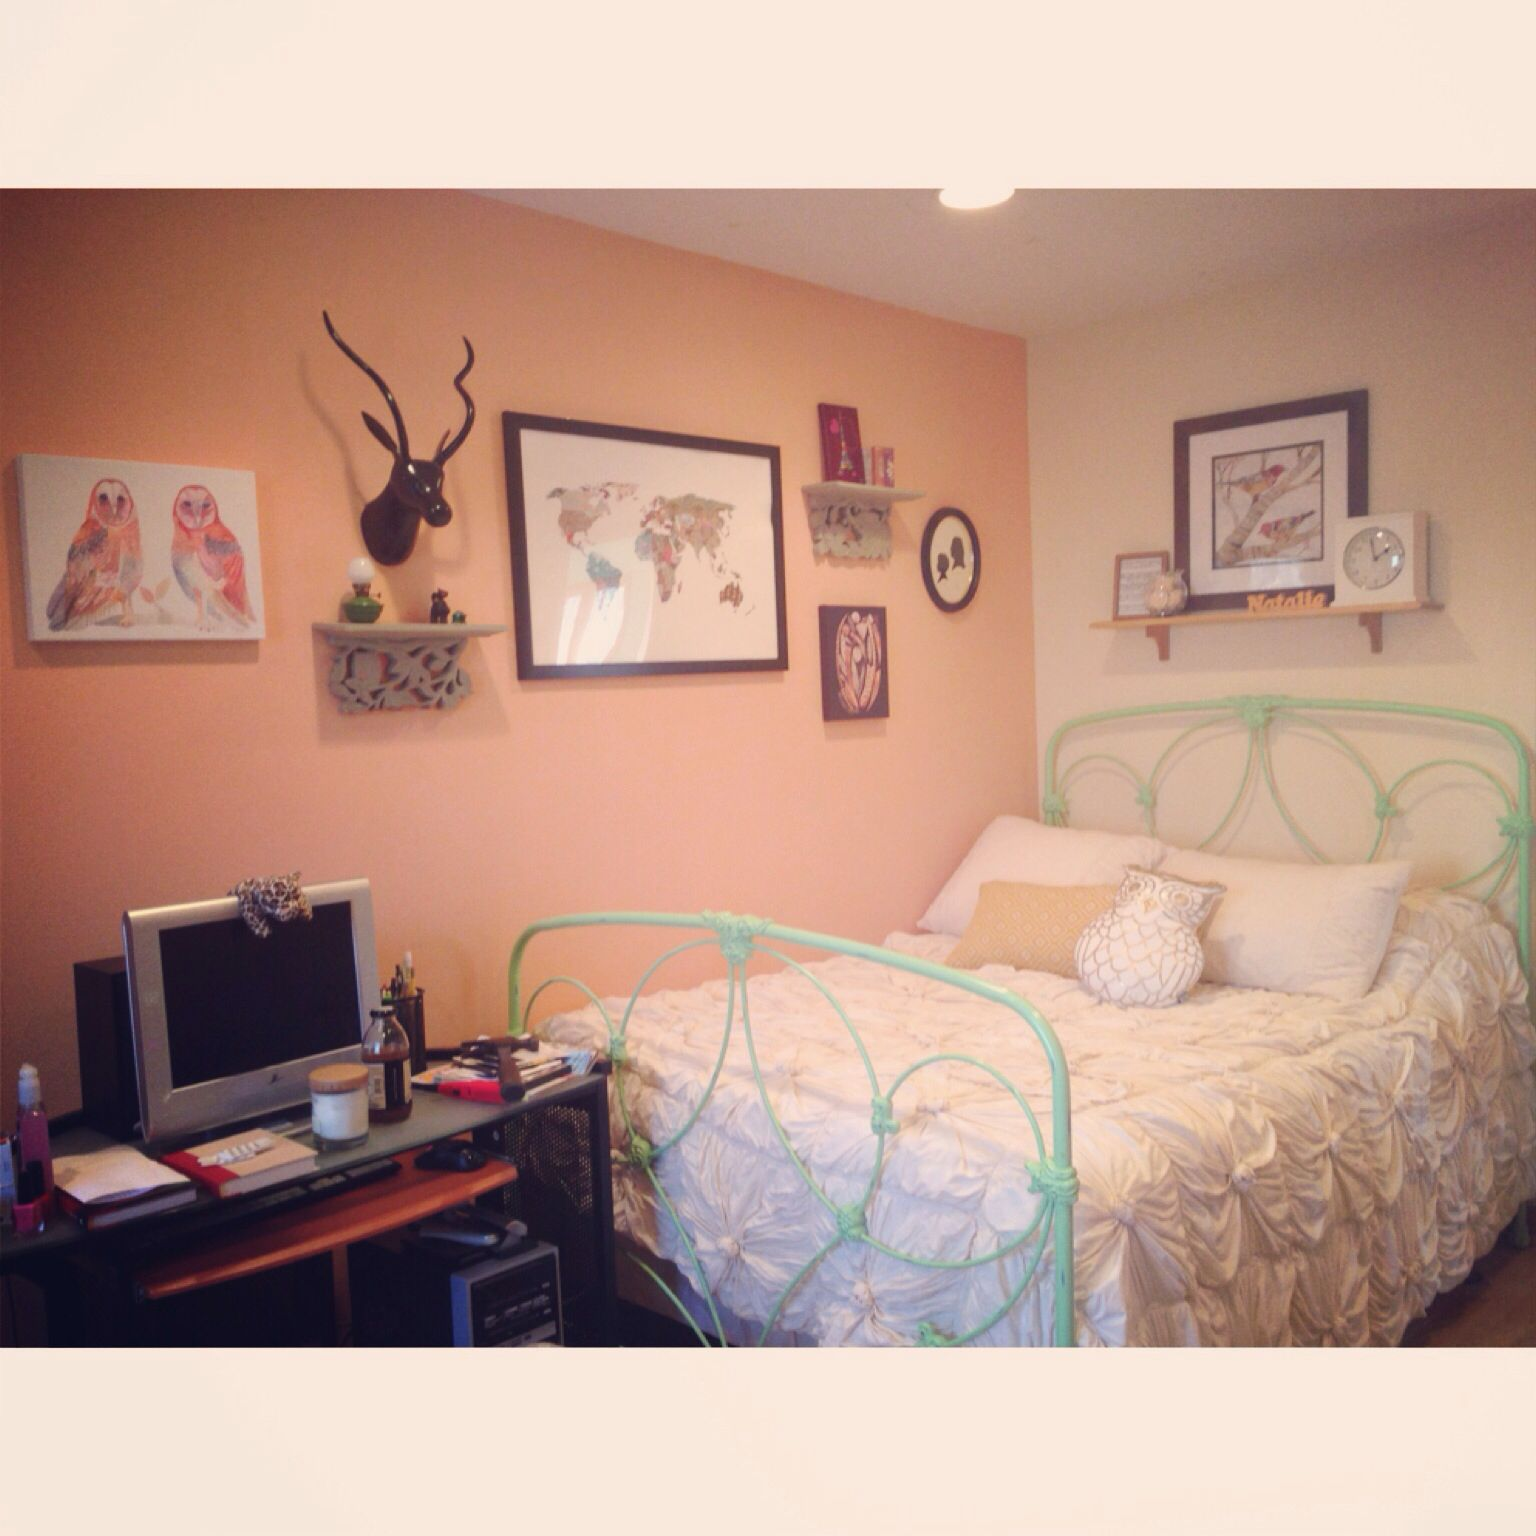 Bedroom Collage Elk Head Anthropologie Bedspread Urban Outfitters Pictures Peach Walls Pb